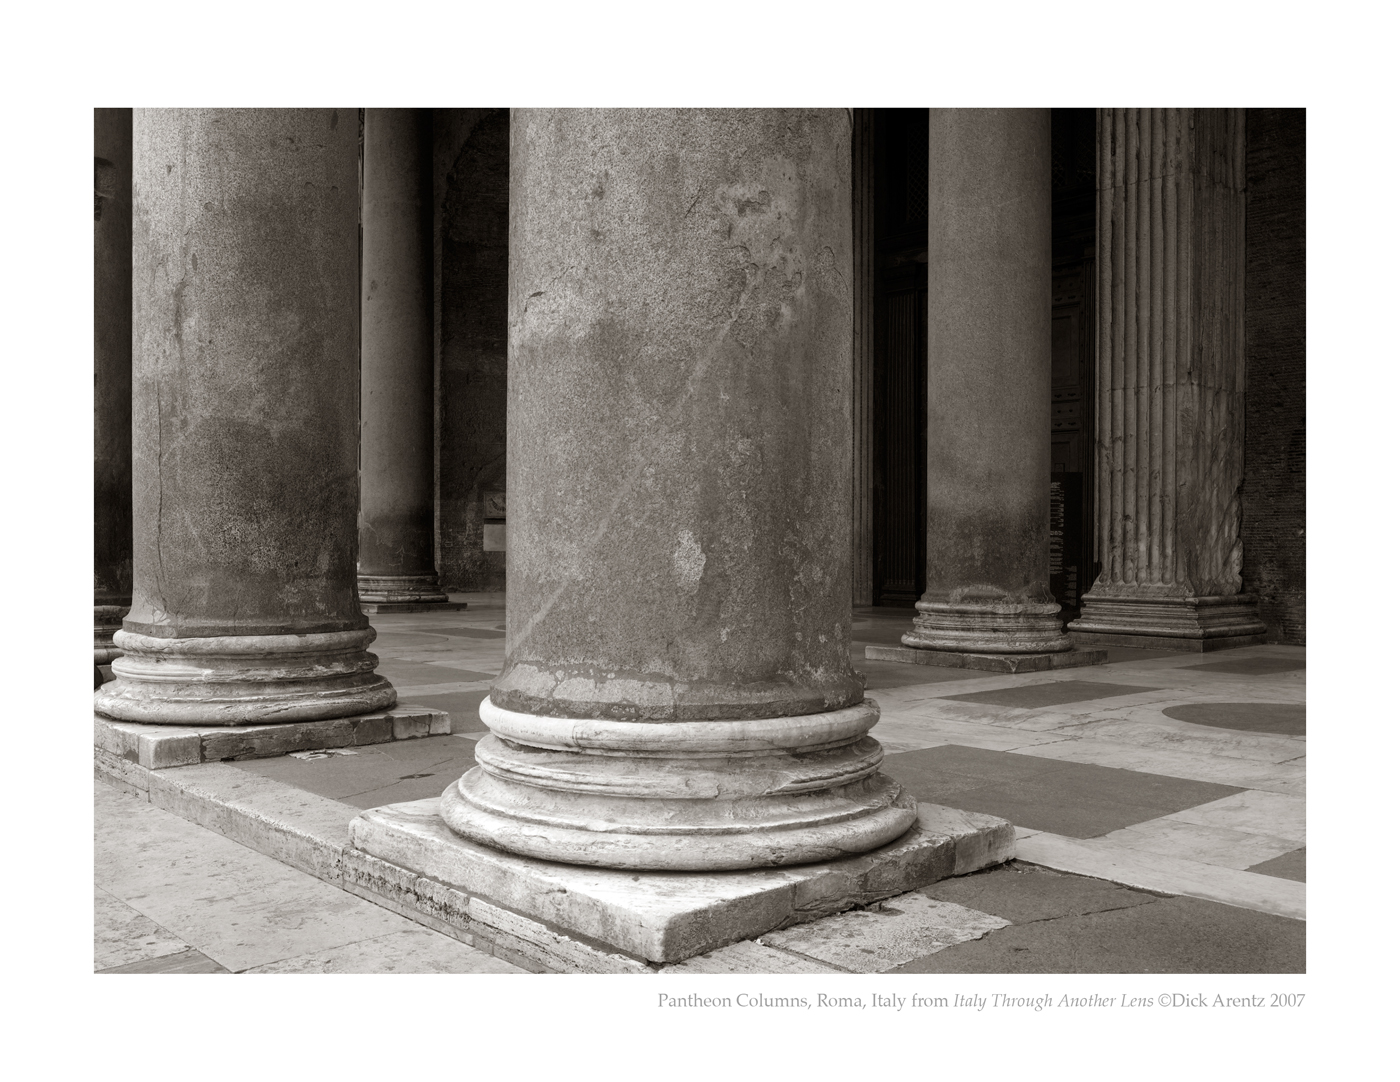 Pantheon Columns, Roma, Italy - Italy Through Another Lens